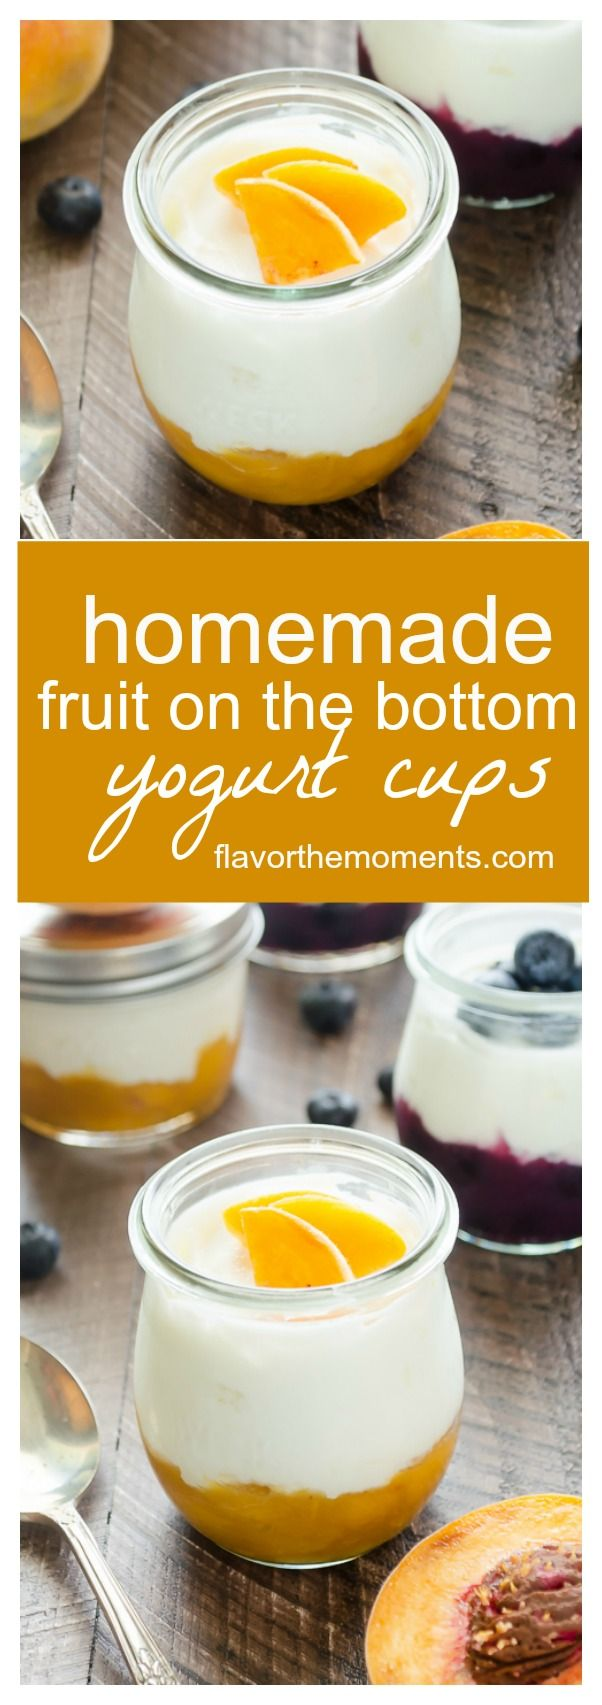 Homemade Fruit on the Bottom Yogurt Cups are homemade fruit compotes topped with plain yogurt and granola. They're a delicious breakfast on the go and are perfect for lunch boxes! @FlavortheMoment